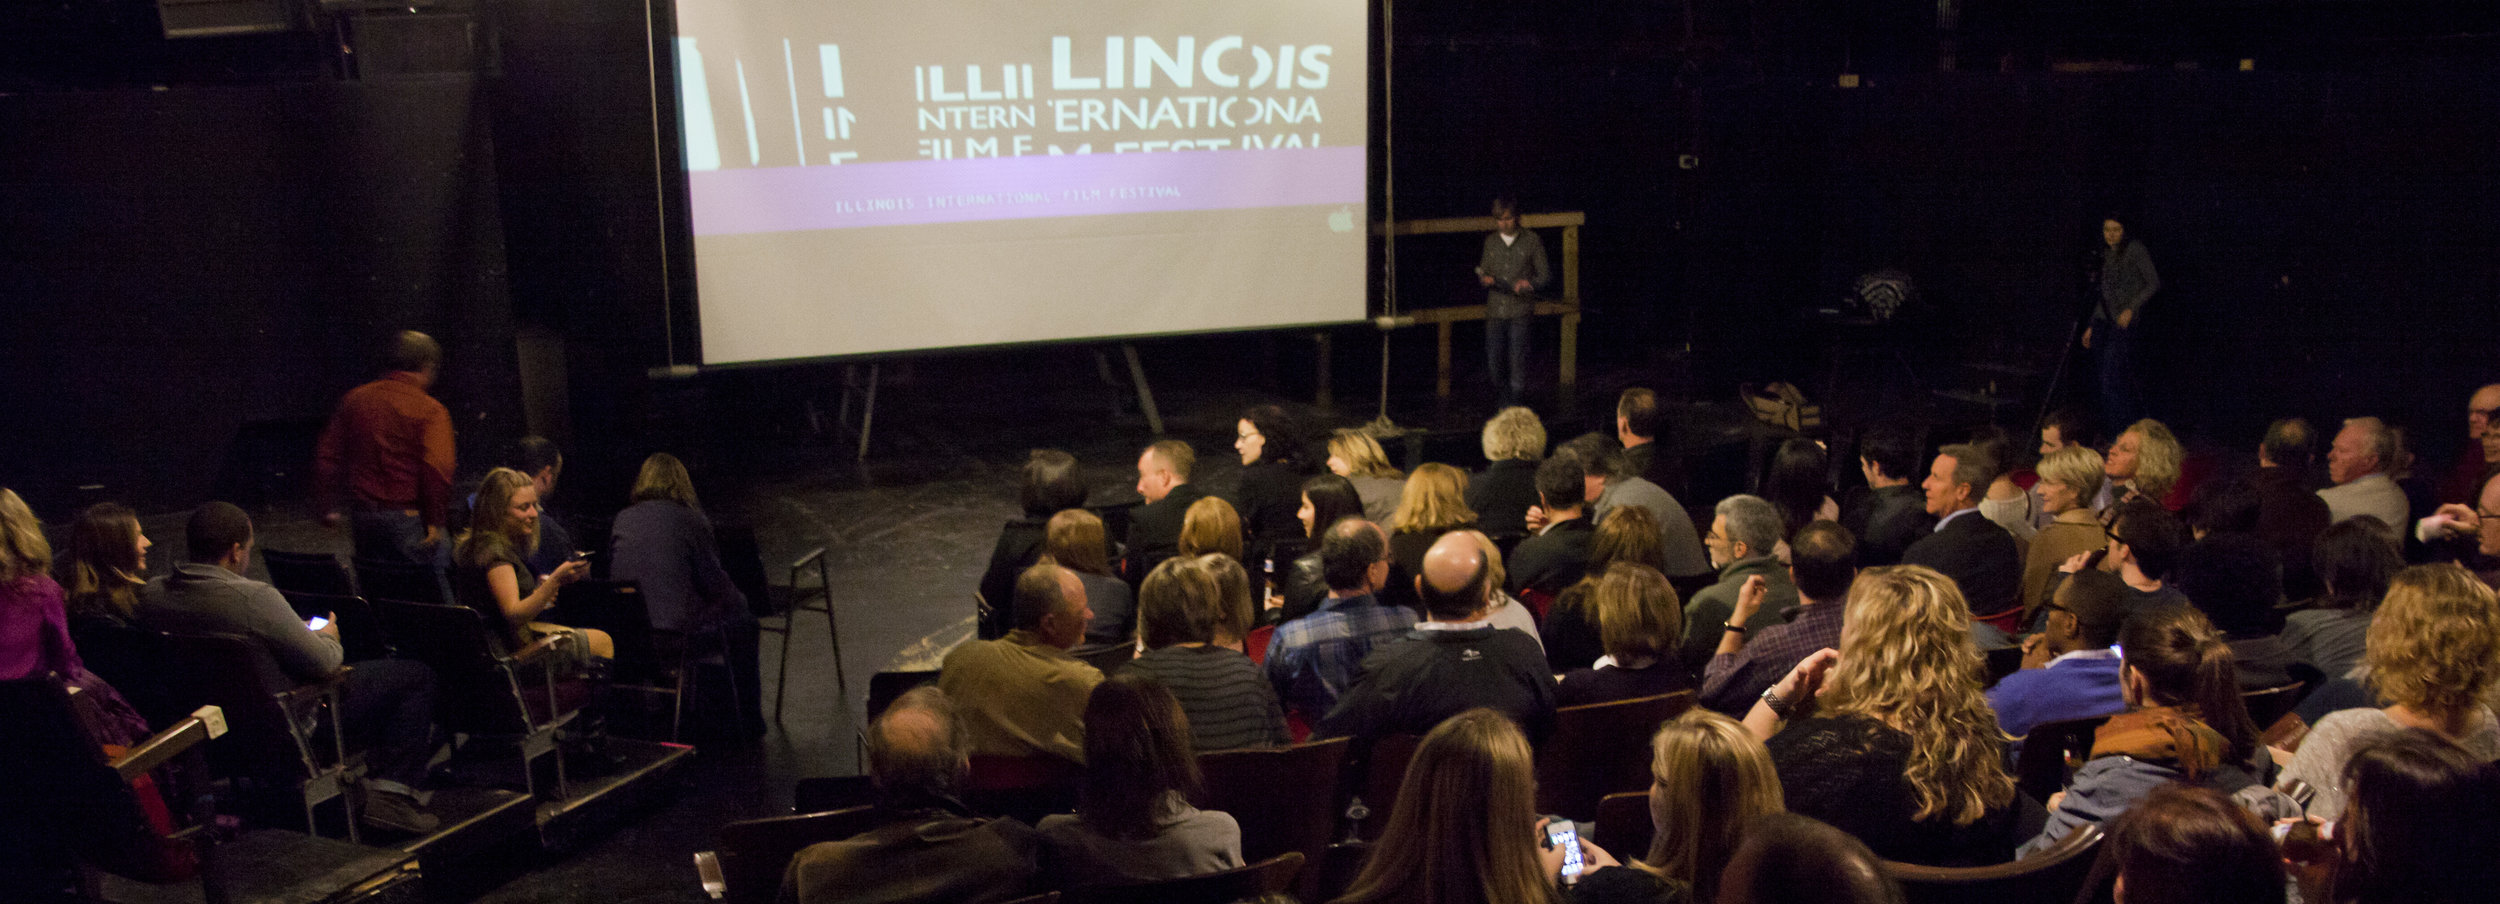 Screening at Illinois International Film Festival